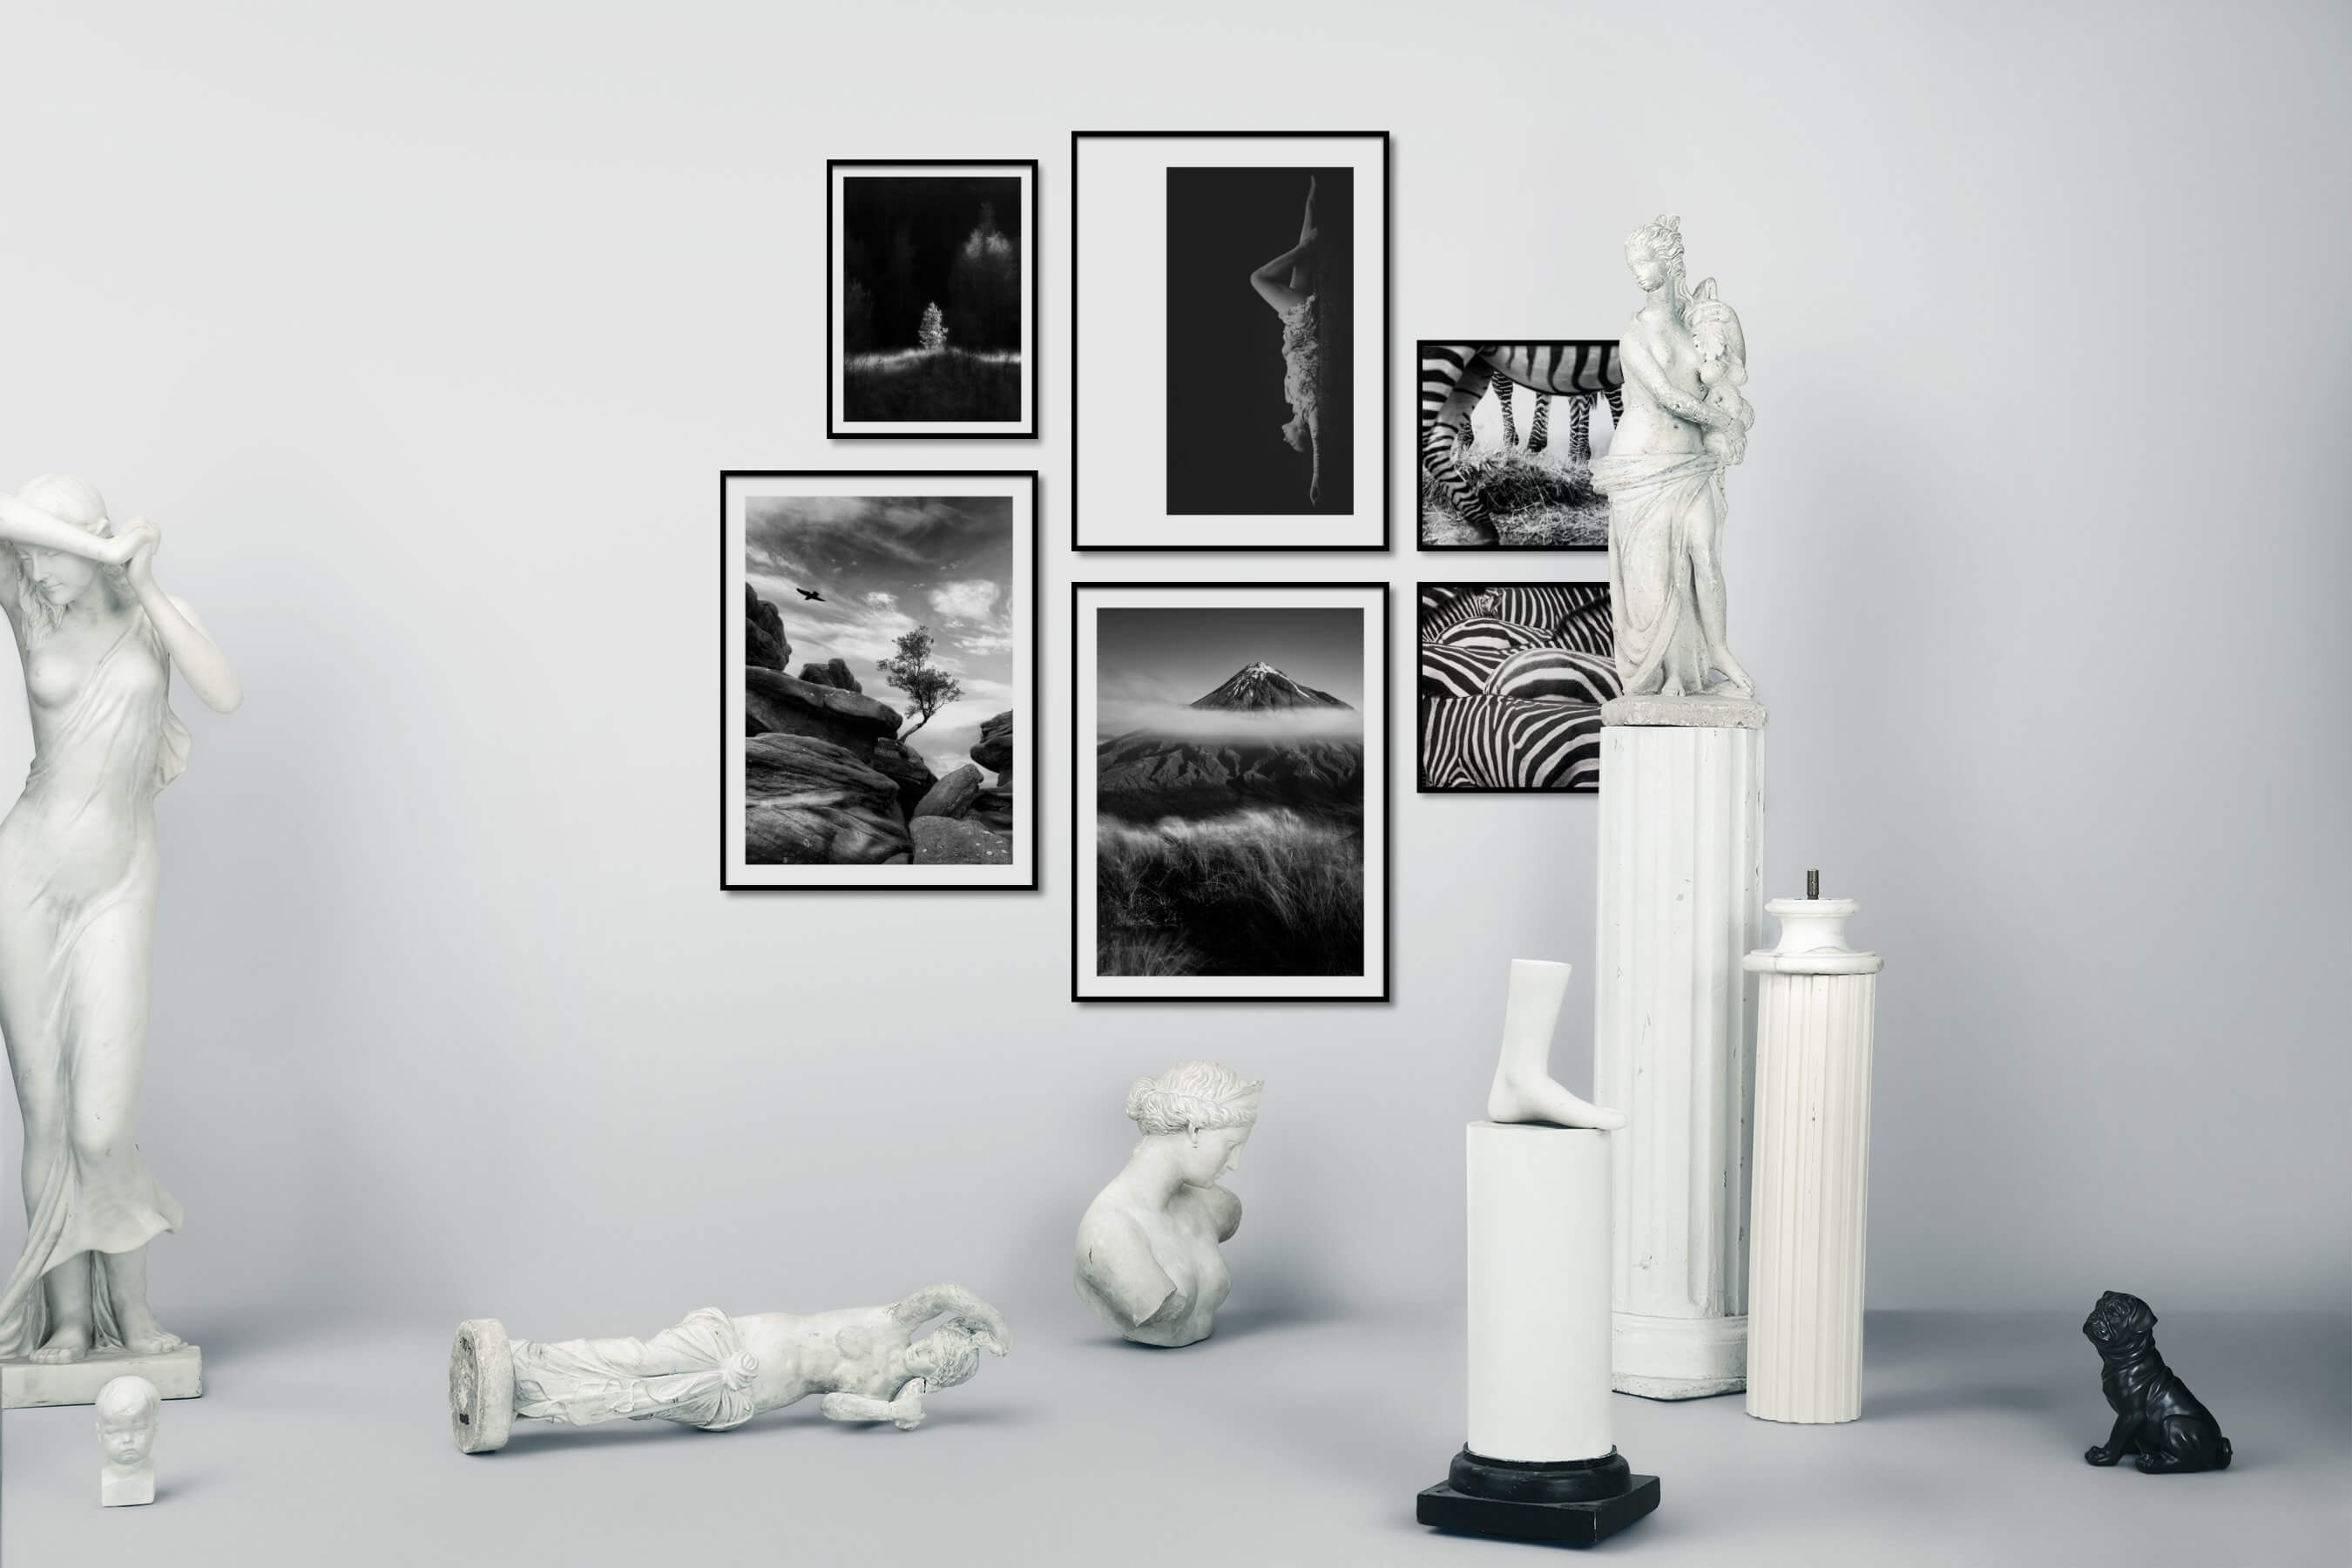 Gallery wall idea with six framed pictures arranged on a wall depicting Black & White, Nature, Fashion & Beauty, For the Minimalist, For the Moderate, Animals, and For the Maximalist